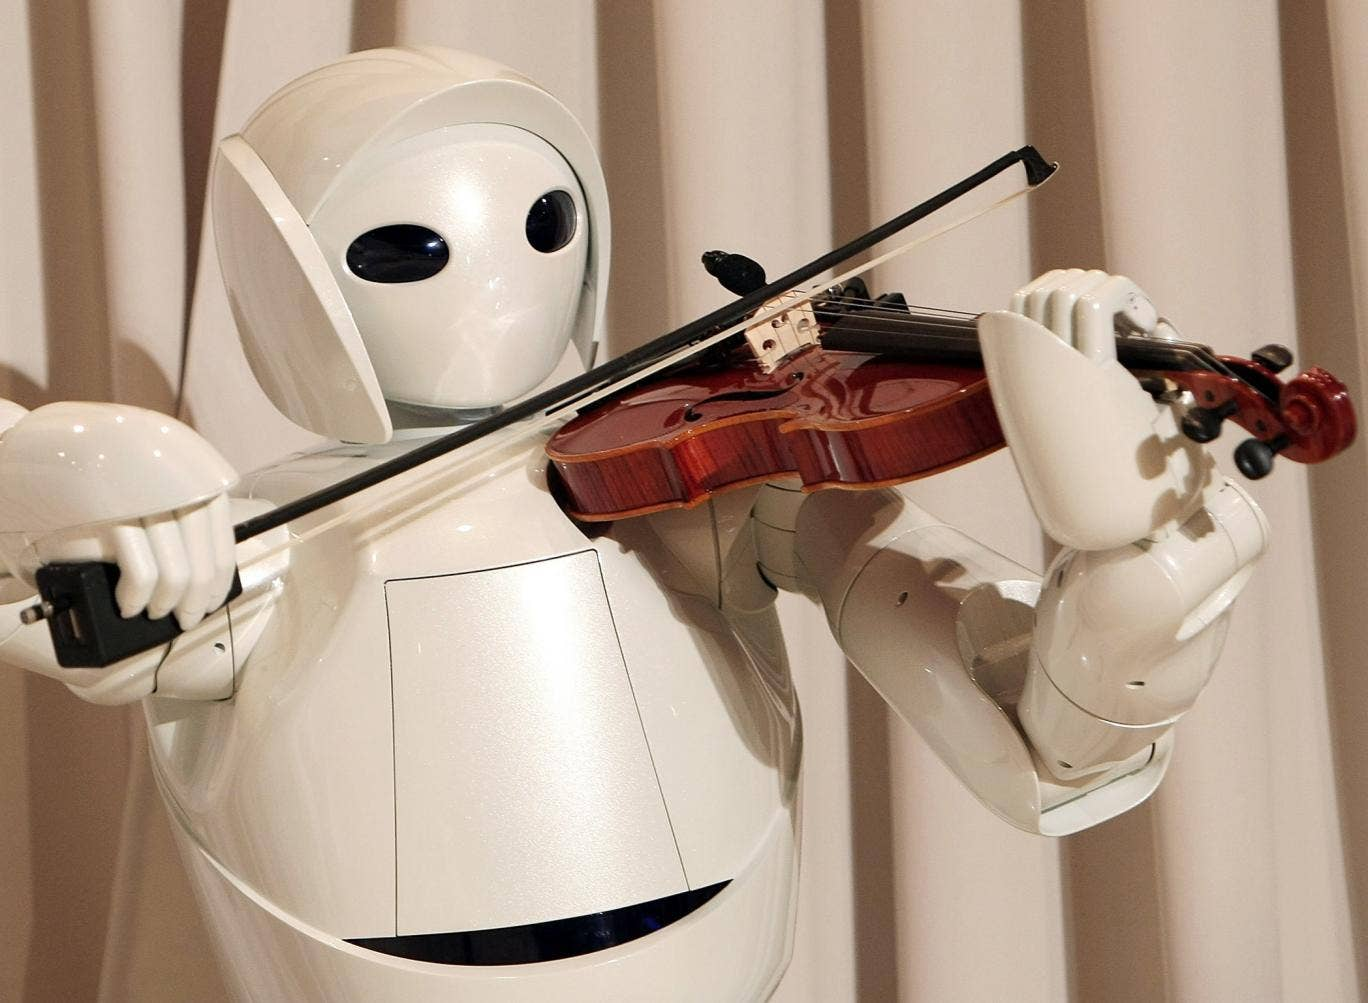 Toyota's violin-playing robot plays at Tokyo's Universal Design Showcase in 2007